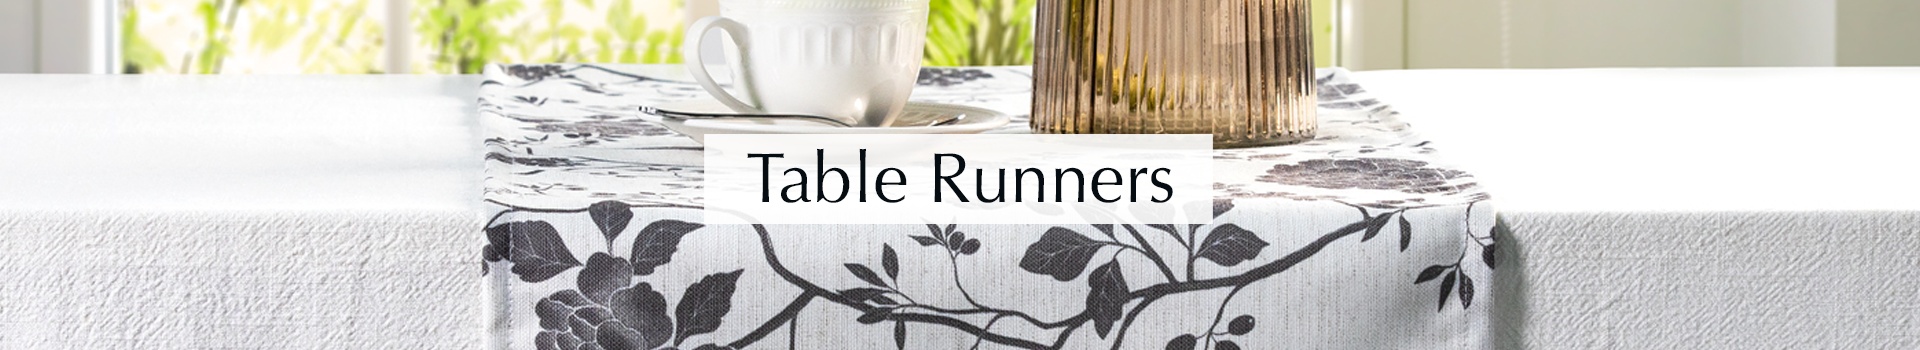 table-runners-category-banner-celina-digby.png